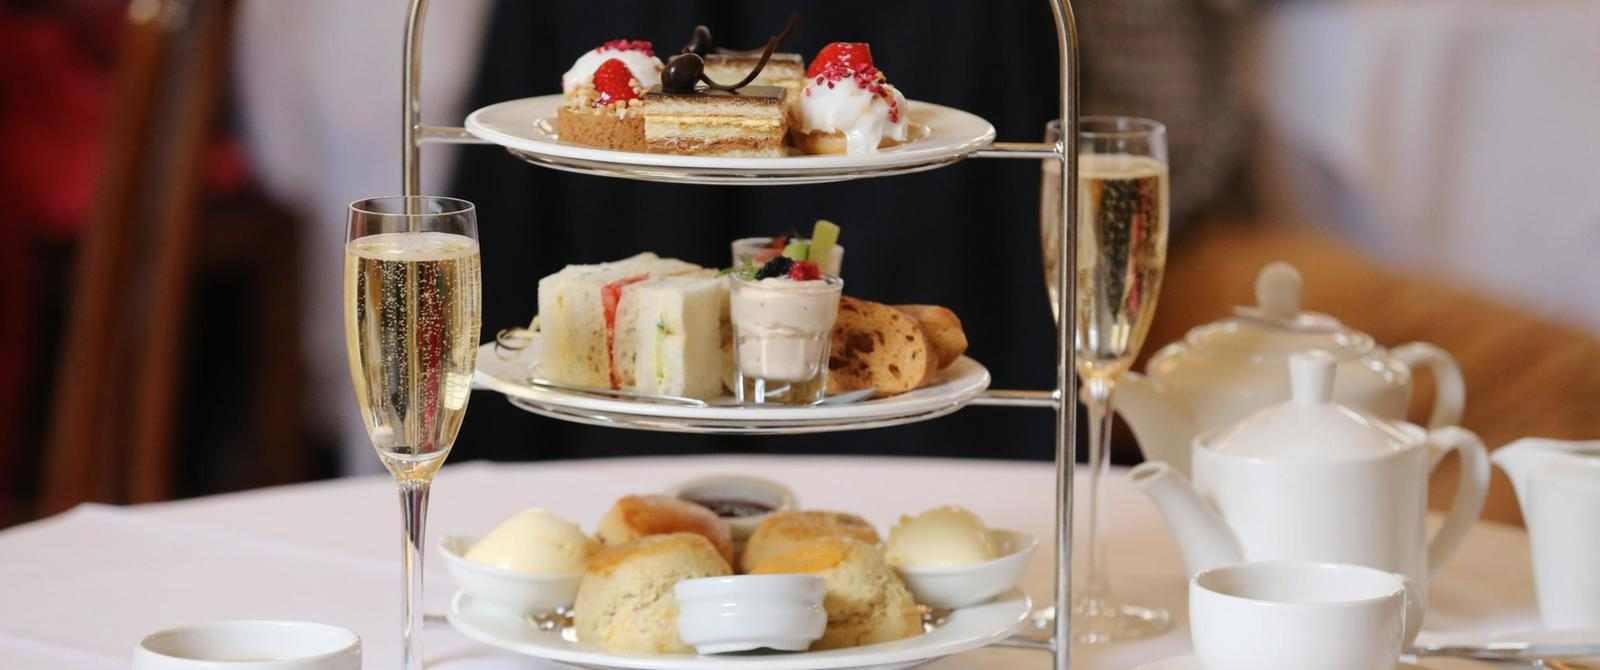 gluten-free afternoon tea in the uk